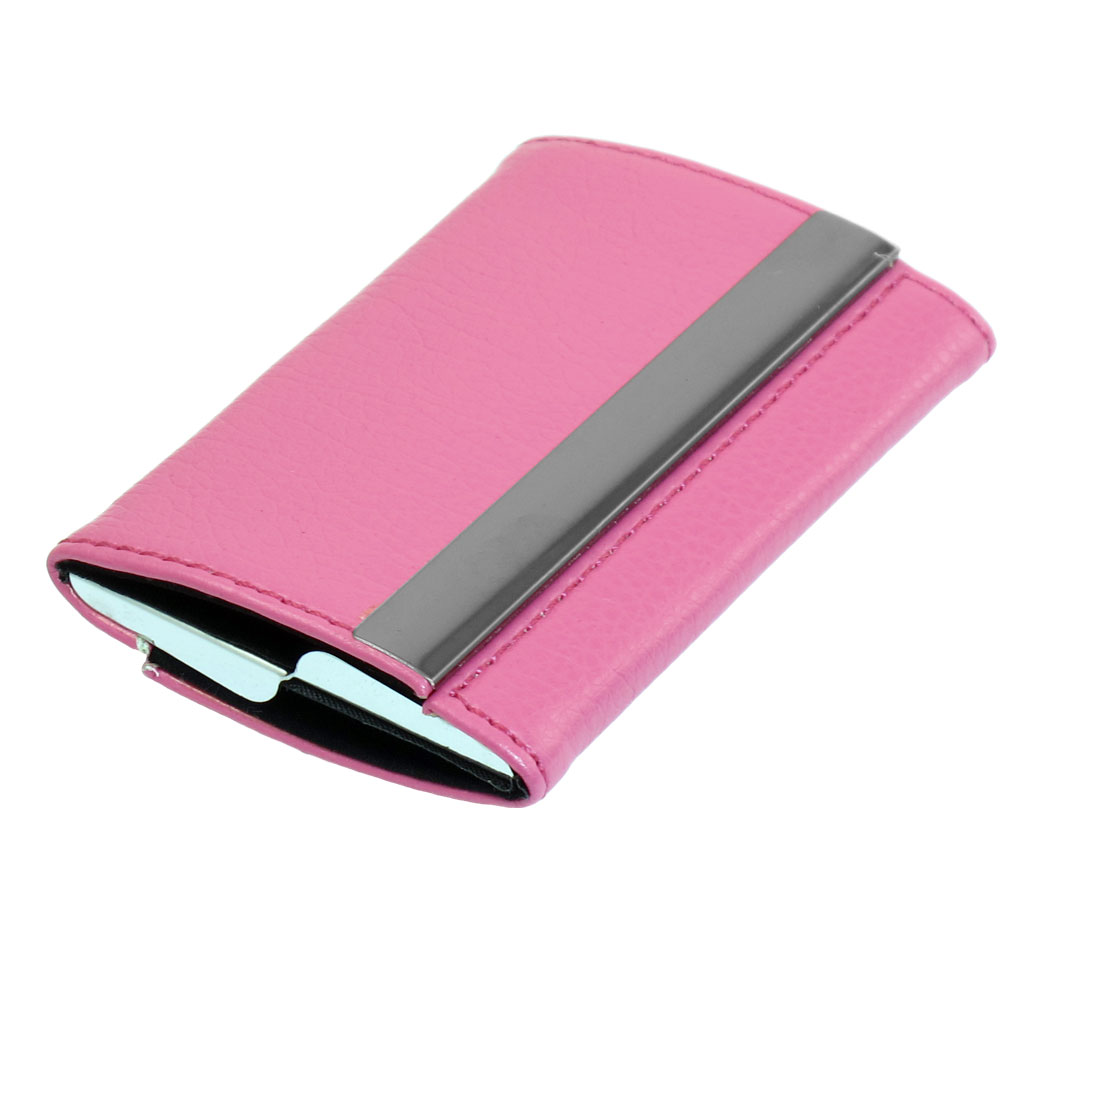 Fuchsia Faux Leather Magnetic Stainless Steel Portable Business Card Holder